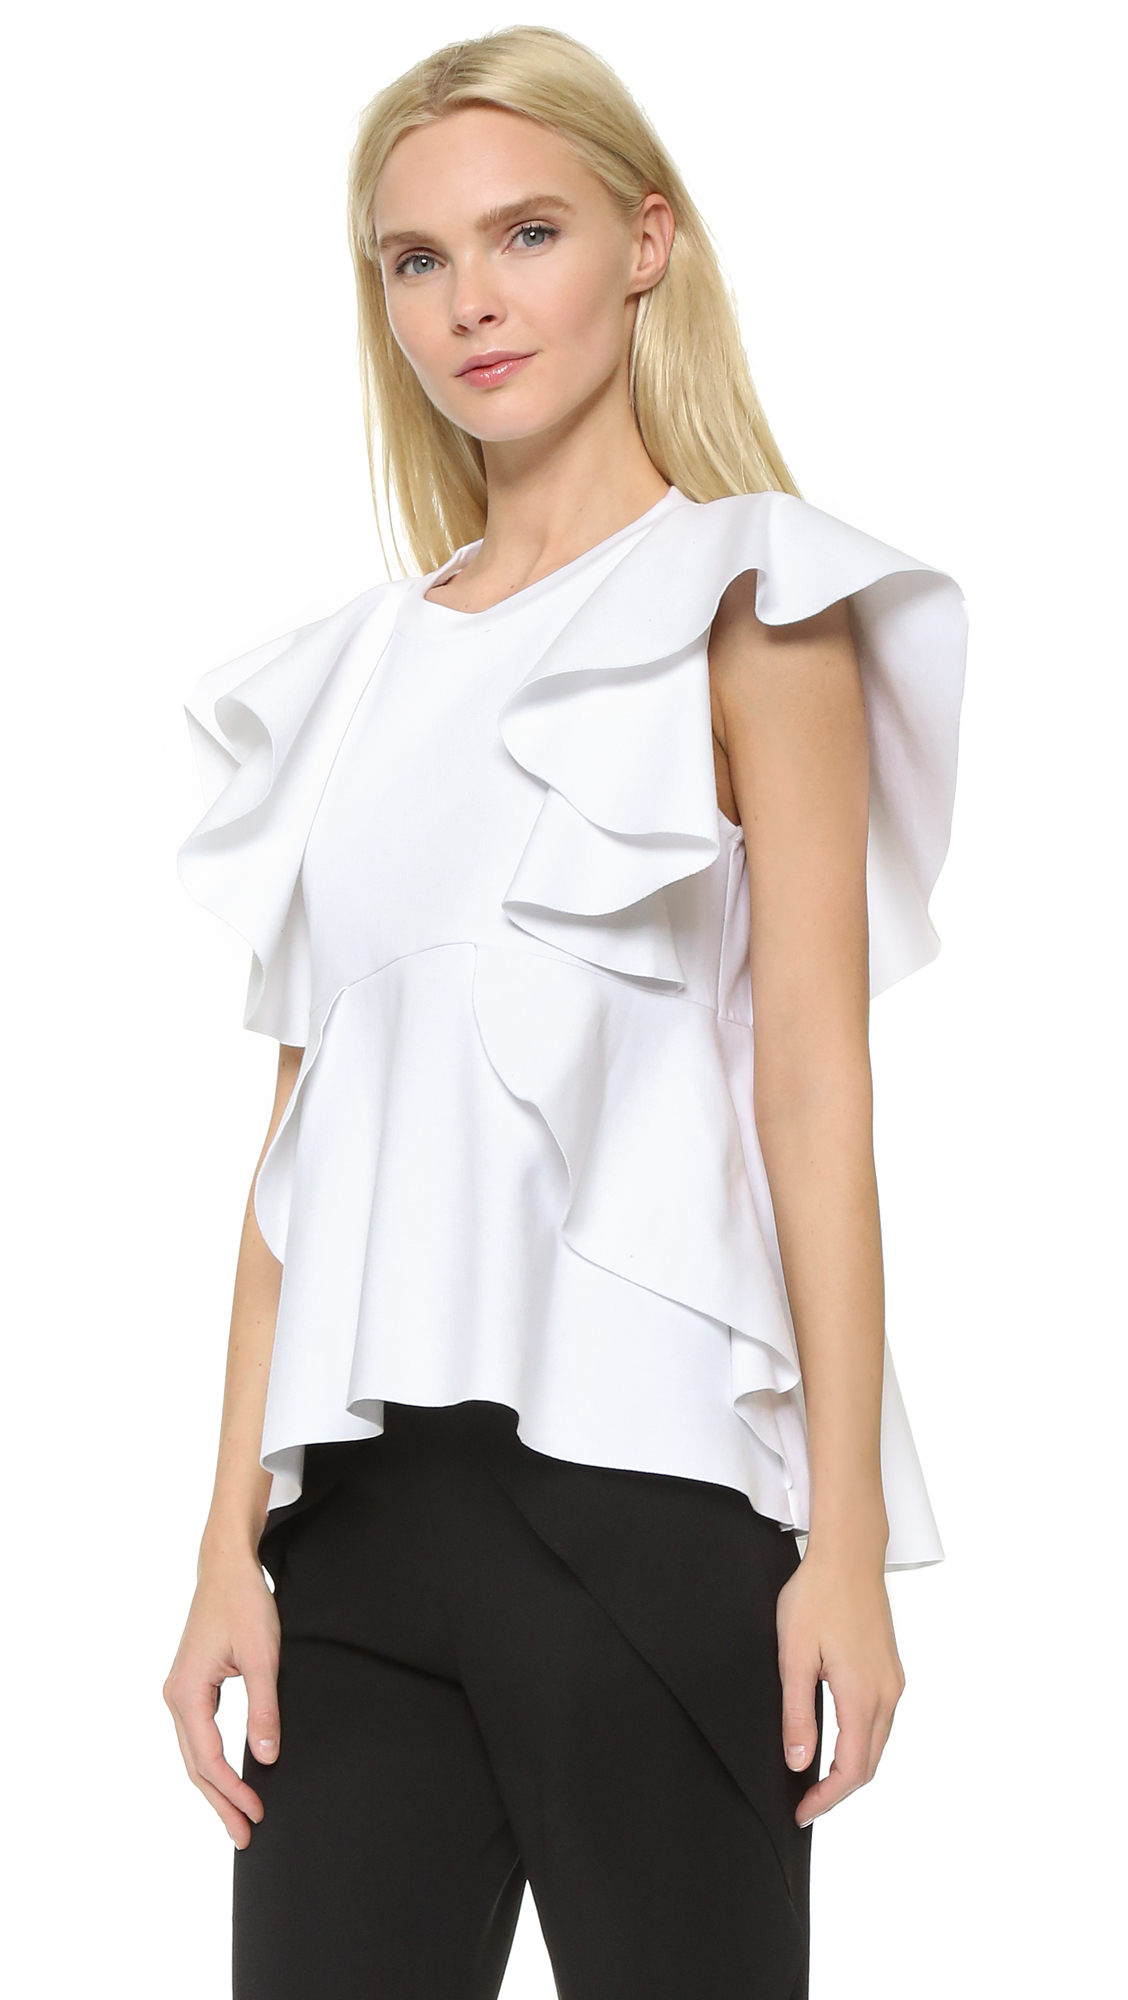 Find ruffle tops at ShopStyle. Shop the latest collection of ruffle tops from the most popular stores - all in one place.